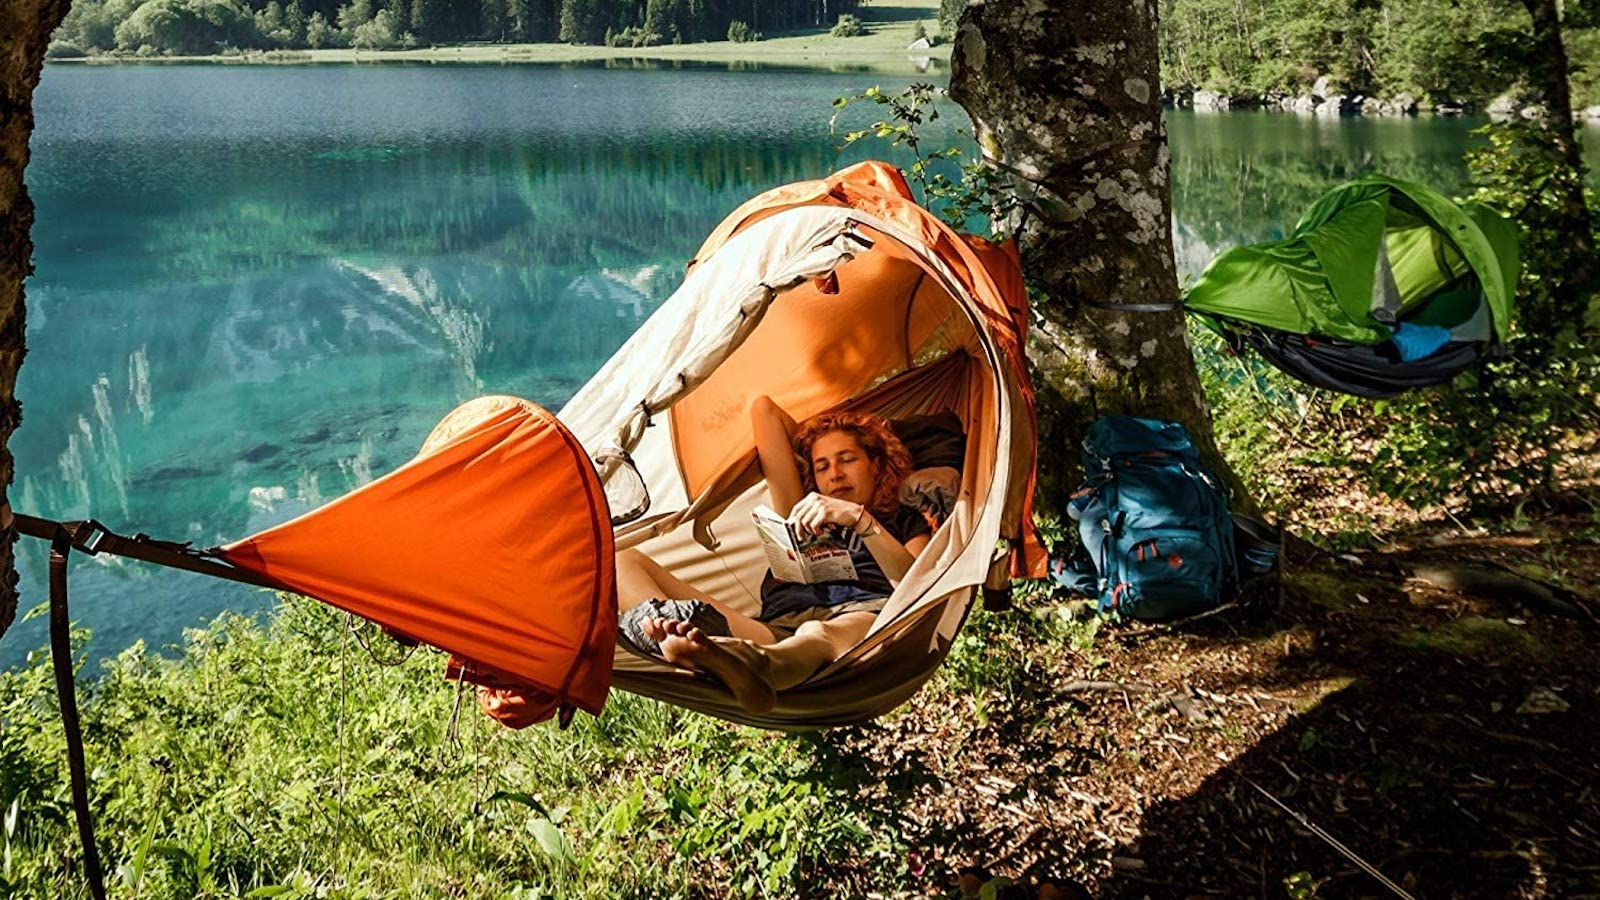 Campfire-Outdoors-flying-tent-01.jpg